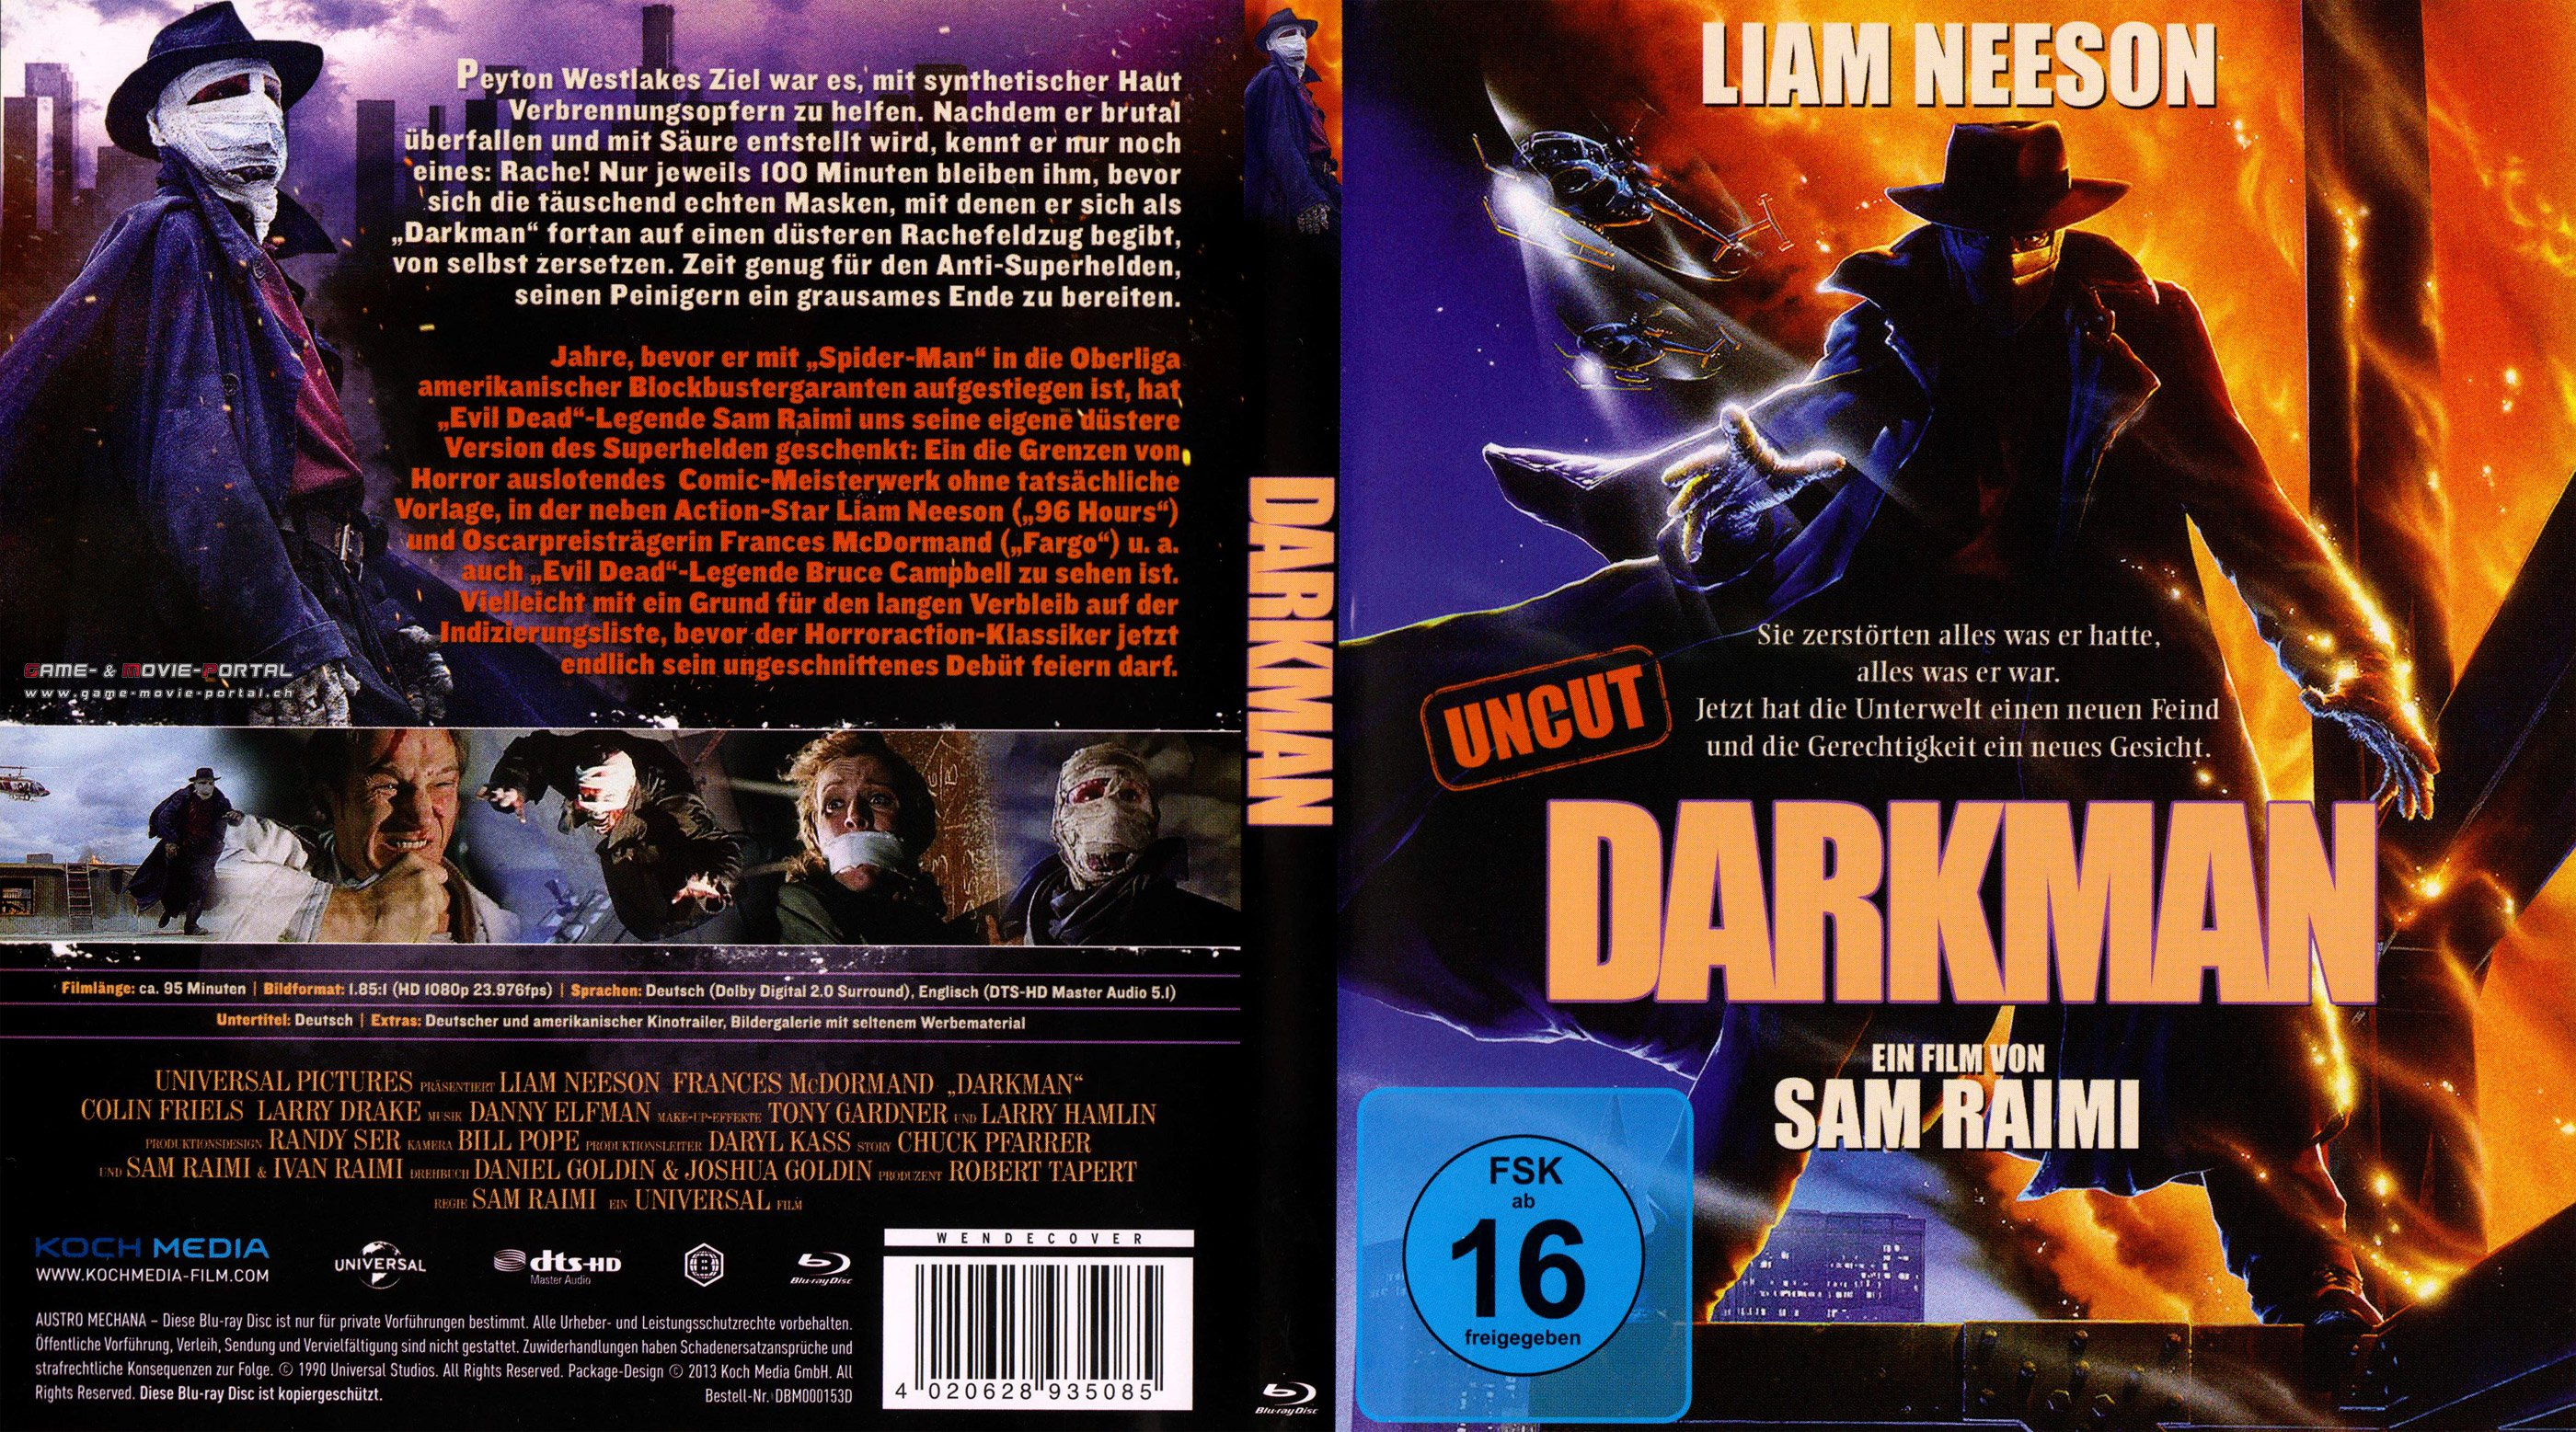 Darkman blu ray cover german | German DVD Covers